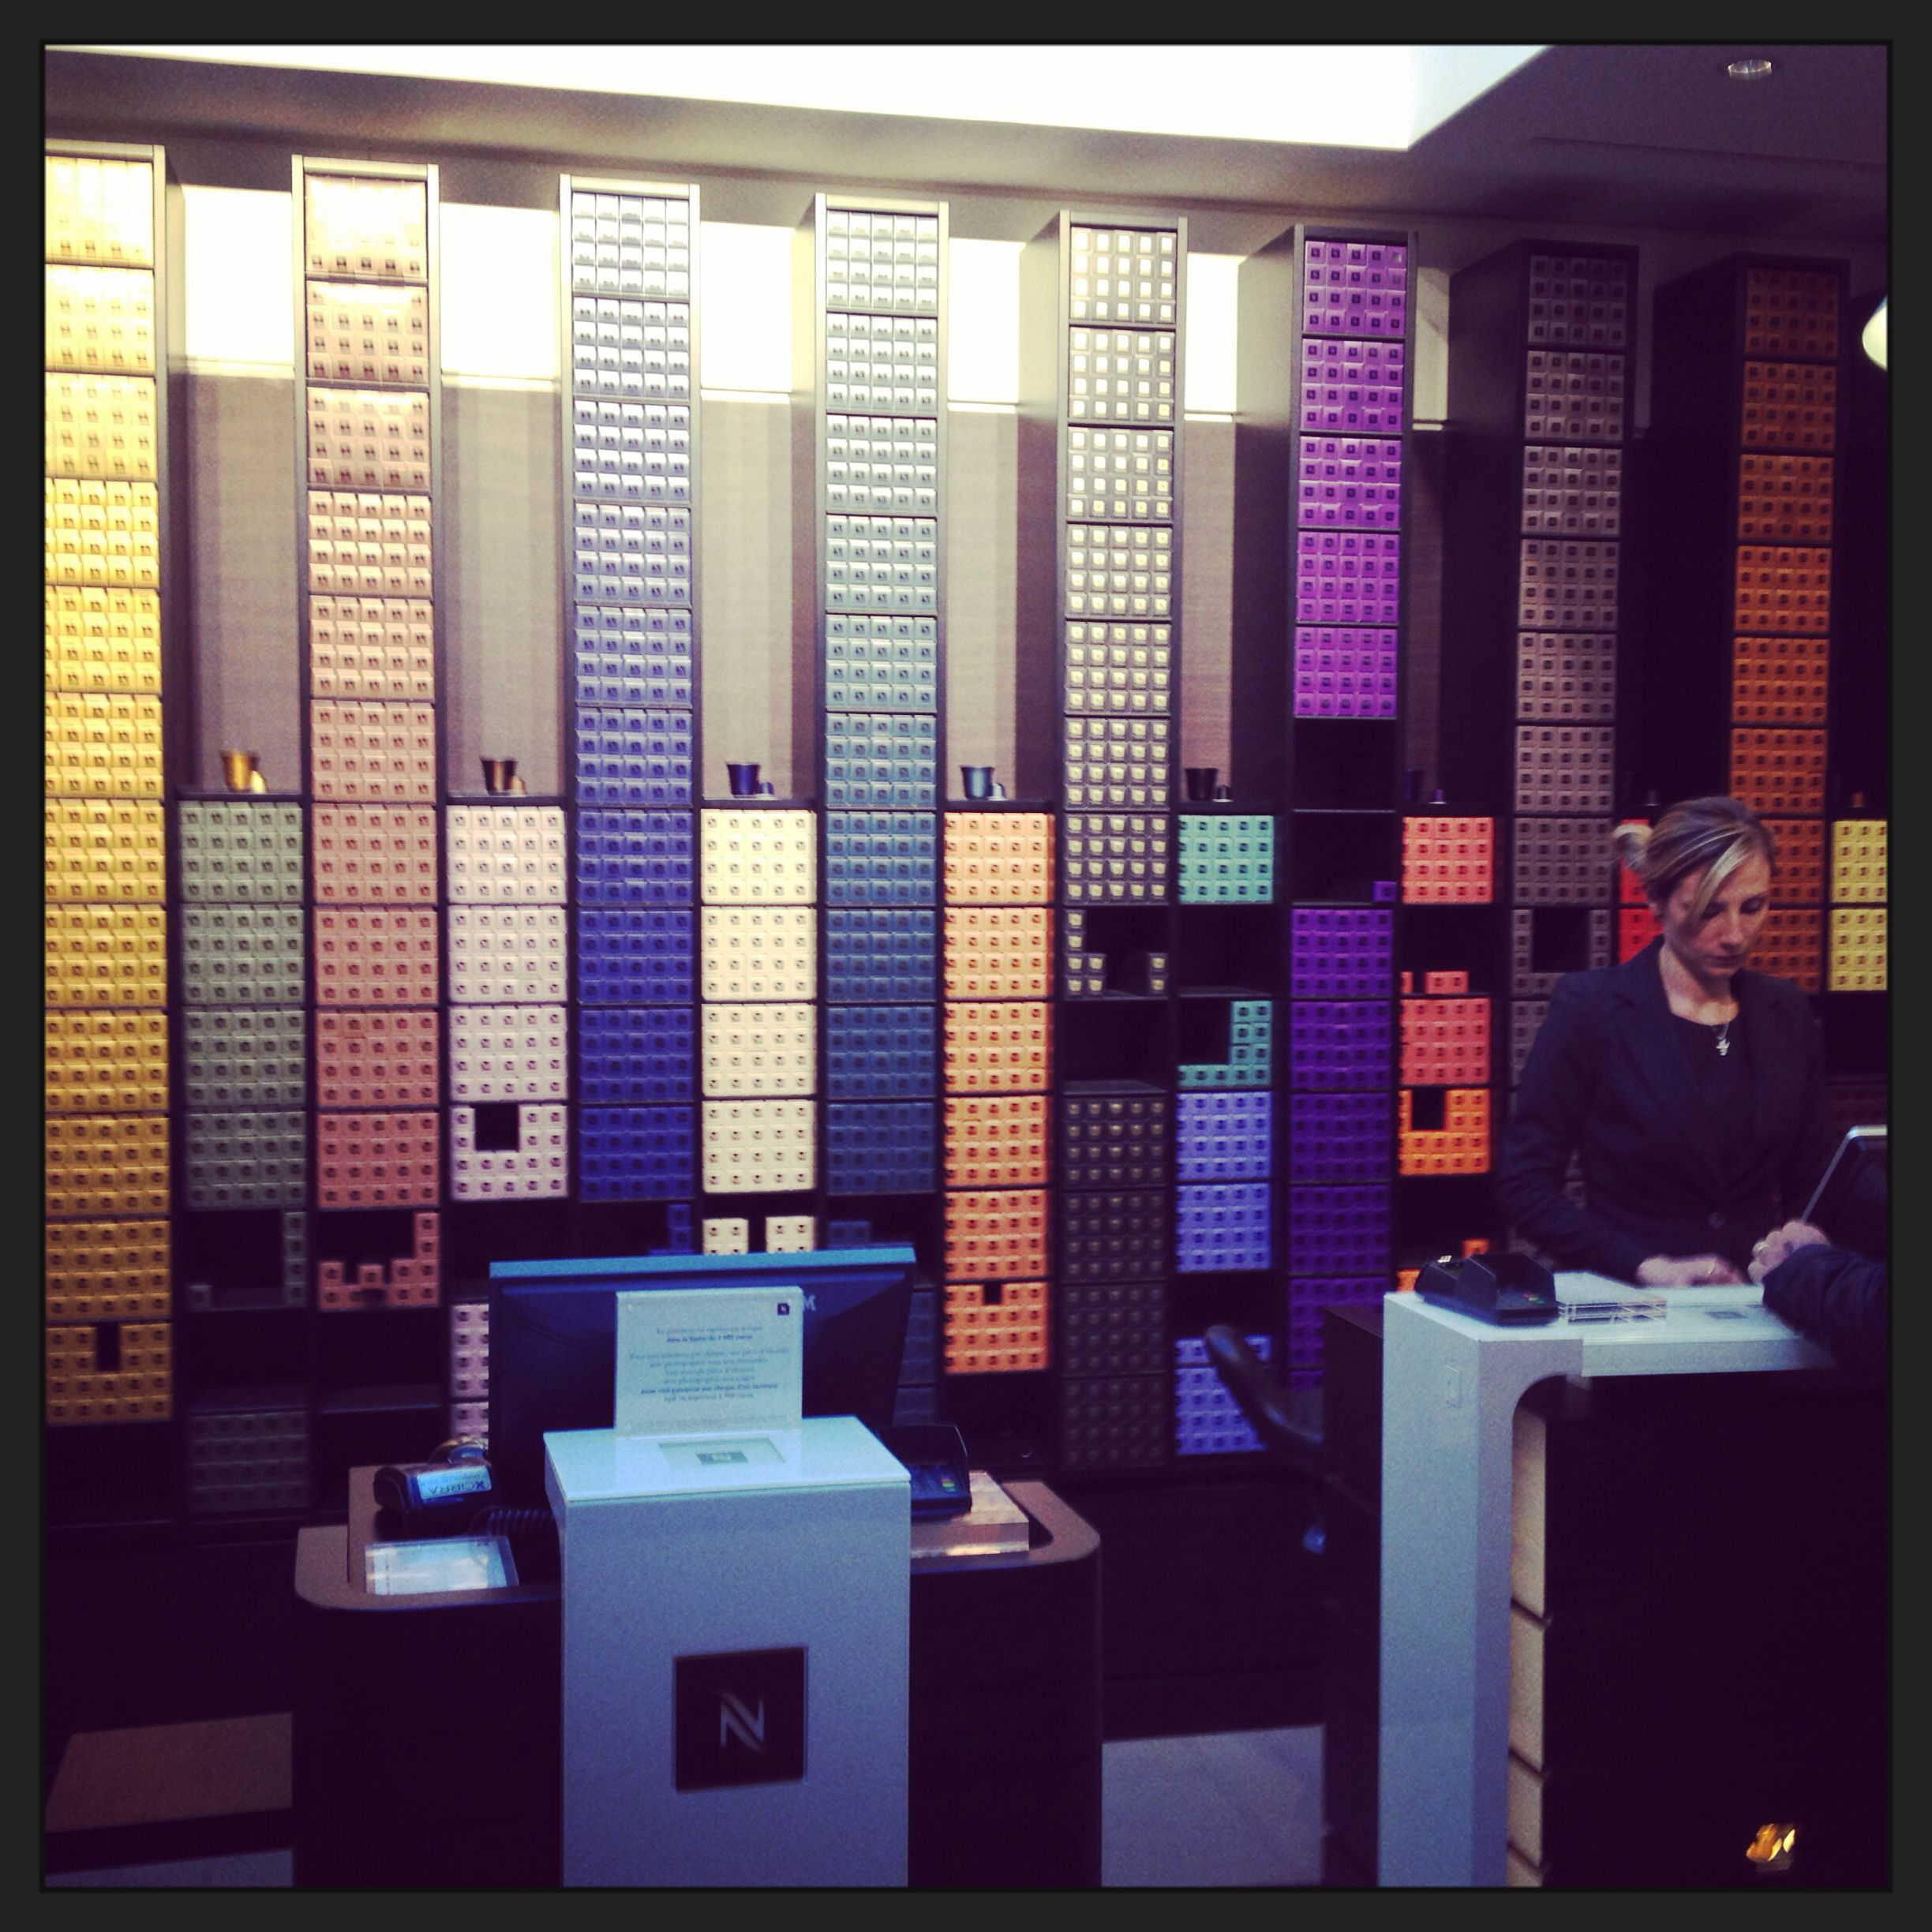 Nespresso Store - Those Are All Pods Of Coffee